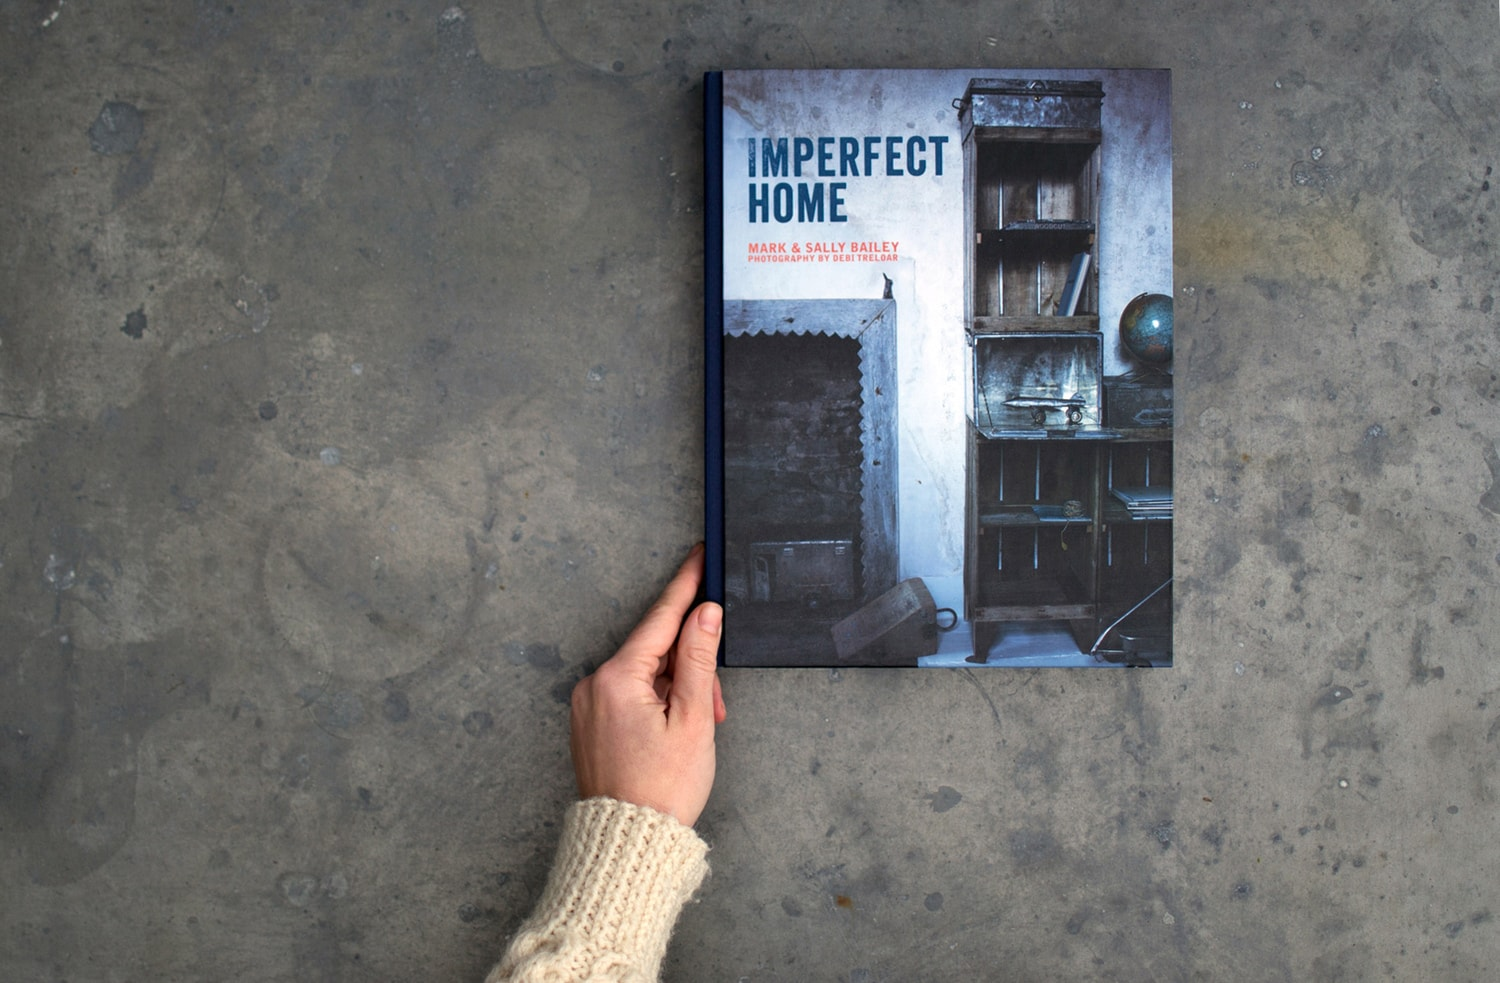 Imperfect Home, Mark & Sally Bailey